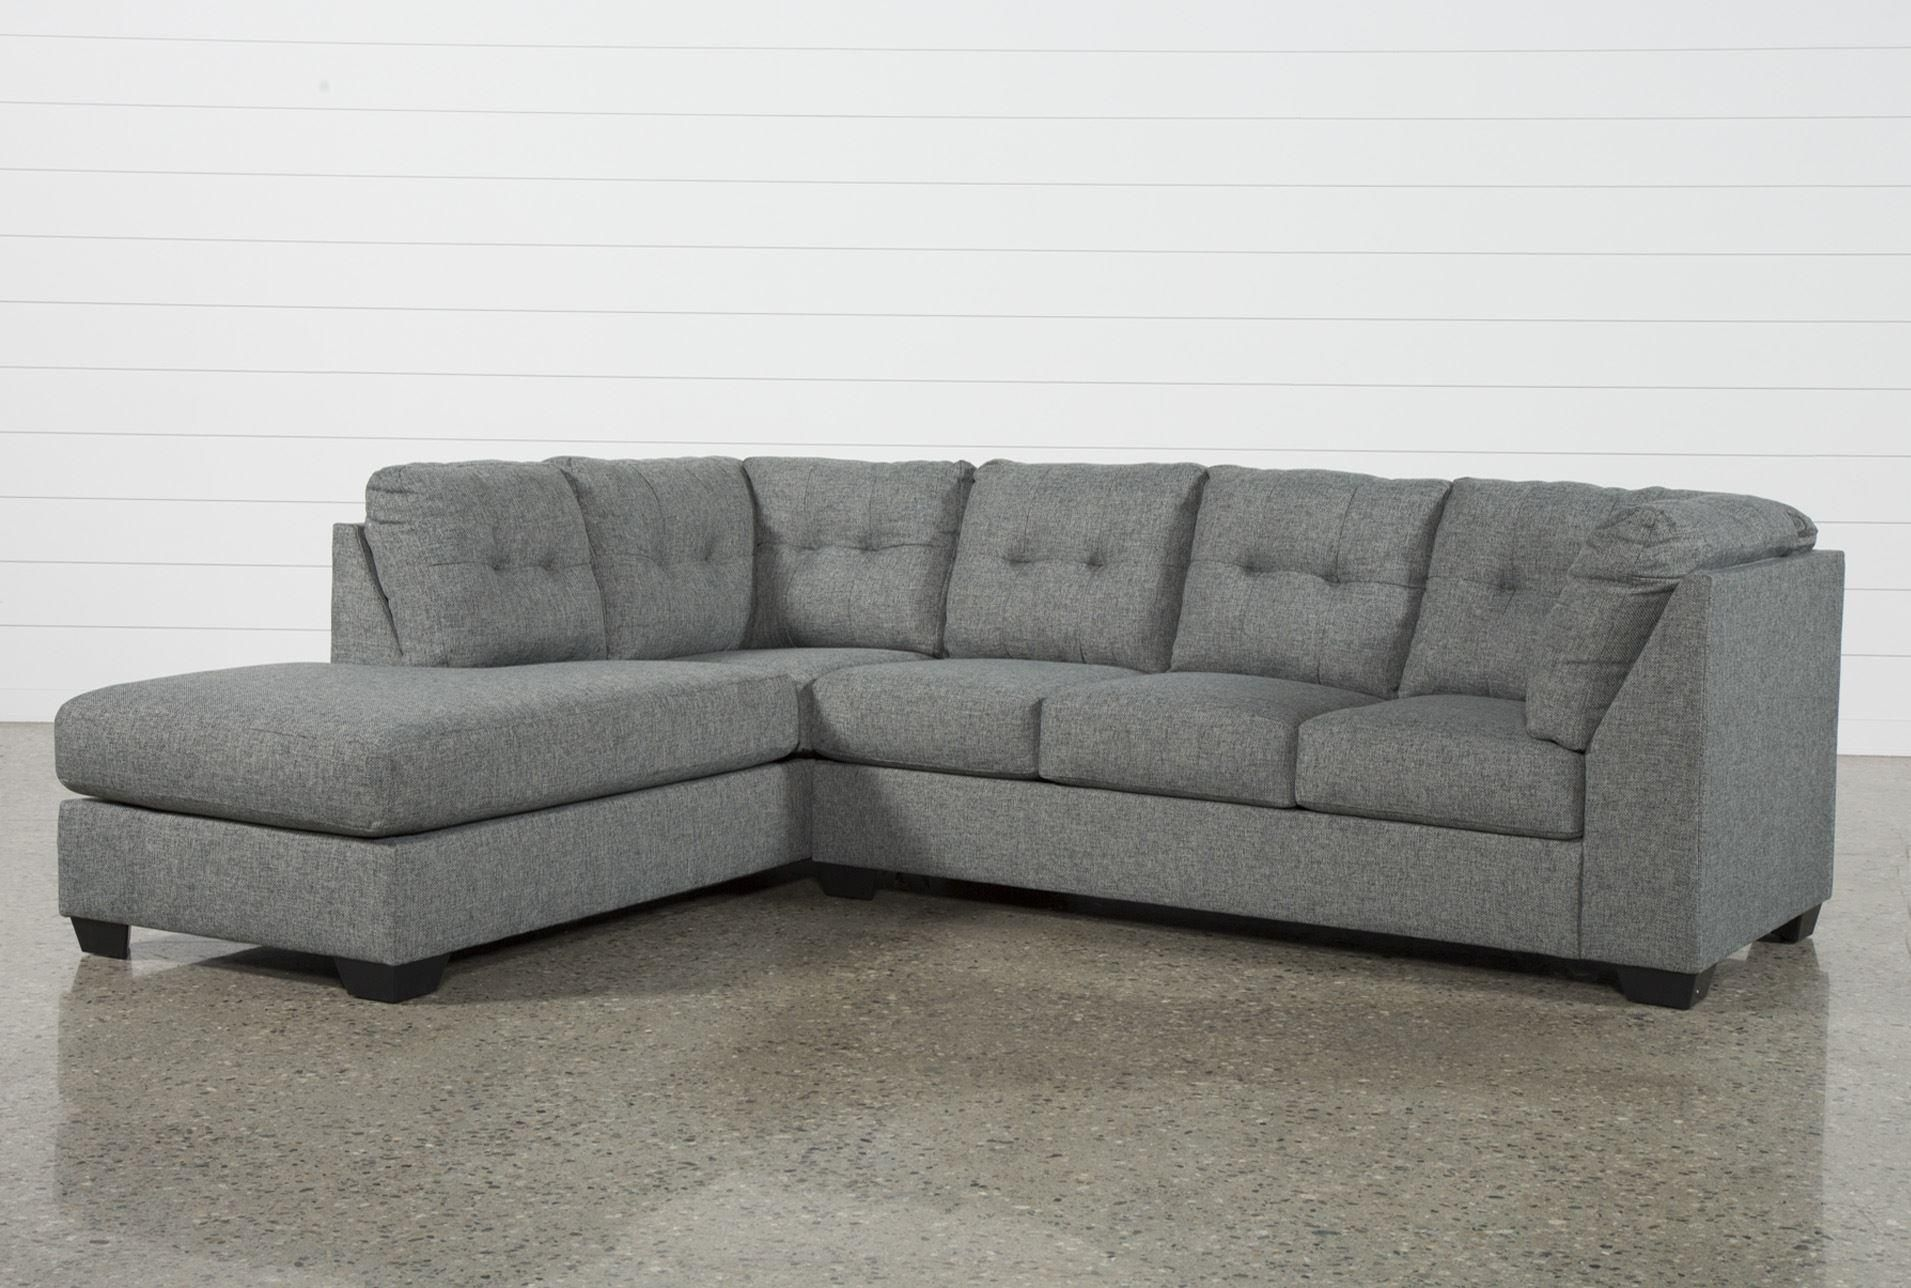 Arrowmask 2 Piece Sectional W/sleeper & Left Facing Chaise Intended For Lucy Grey 2 Piece Sleeper Sectionals With Raf Chaise (View 8 of 25)